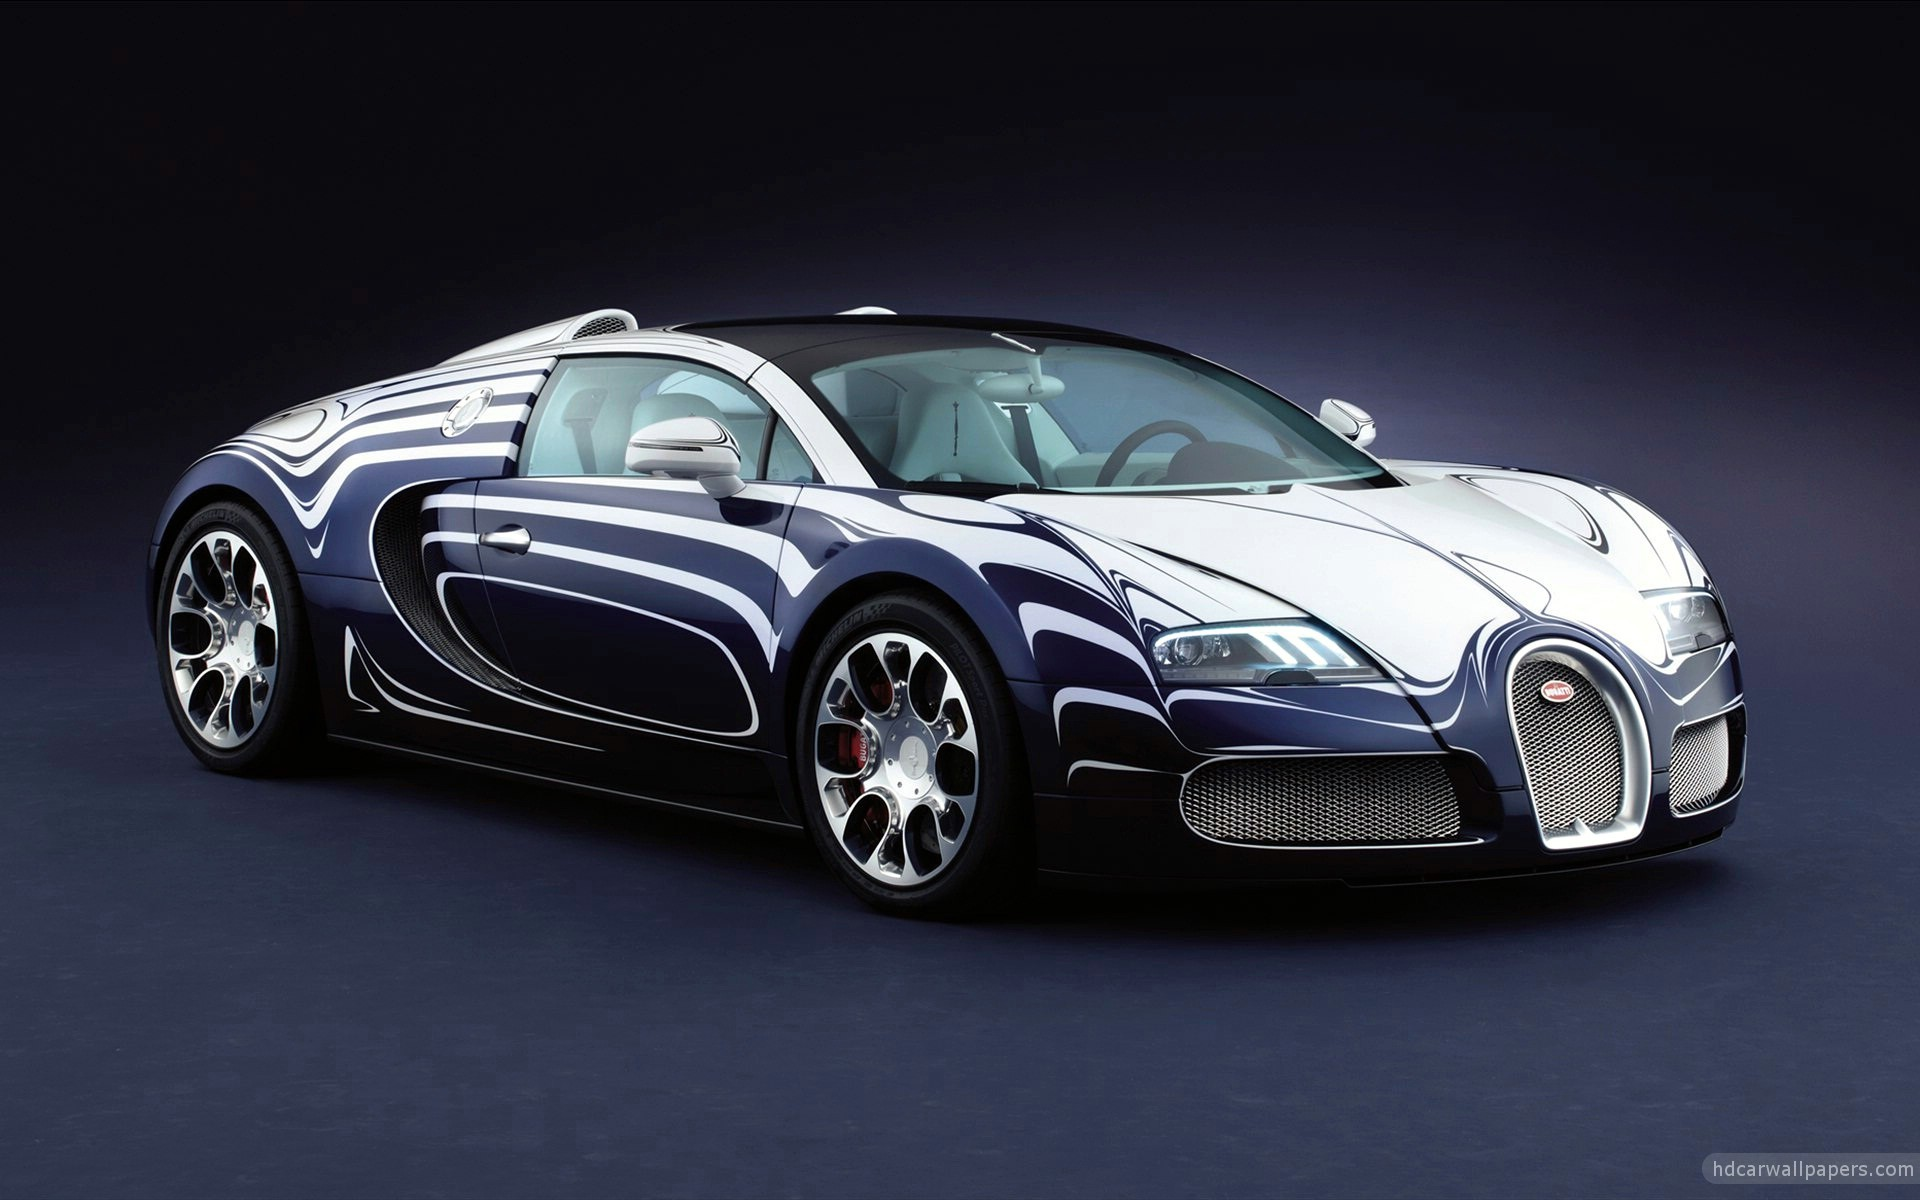 Sport Wallpaper Bugatti Veyron: 2011 Bugatti Veyron Grand Sport Wallpaper